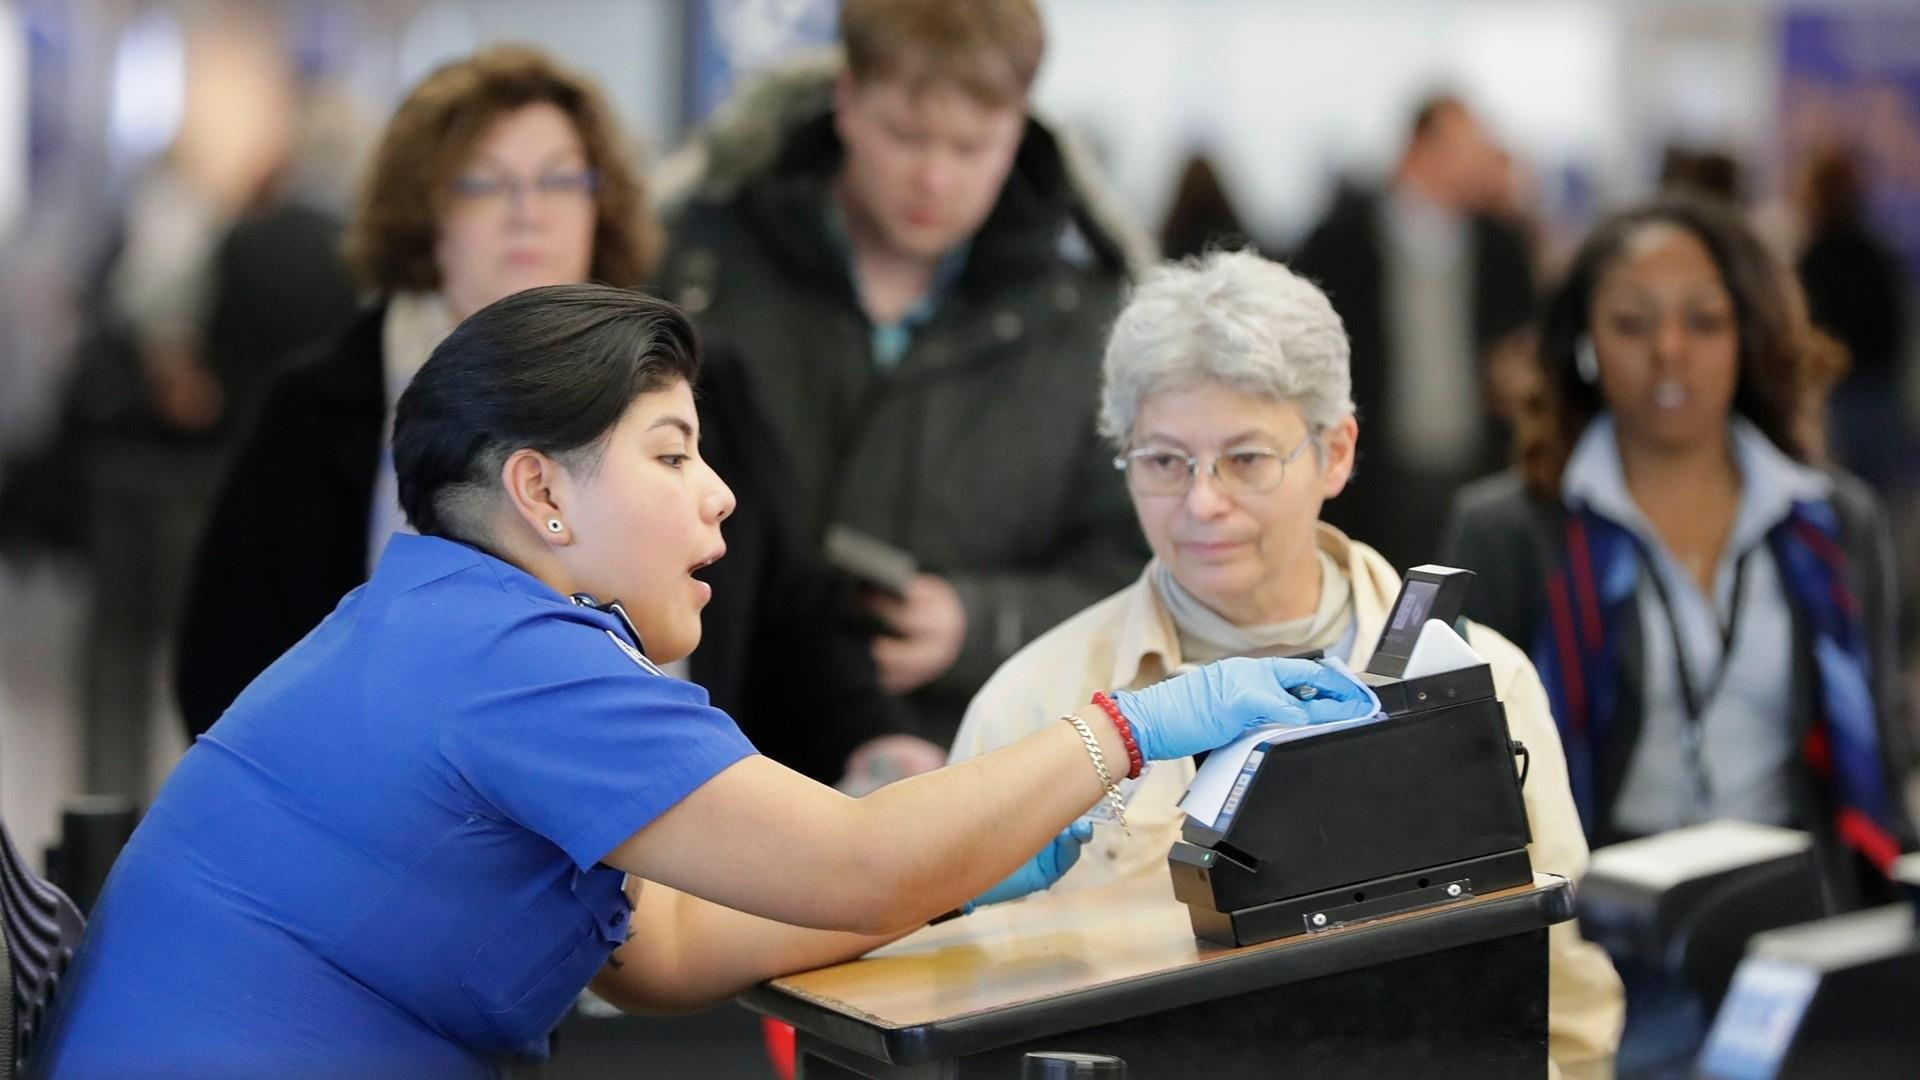 Ground stop issued at LaGuardia airport due to staffing issues